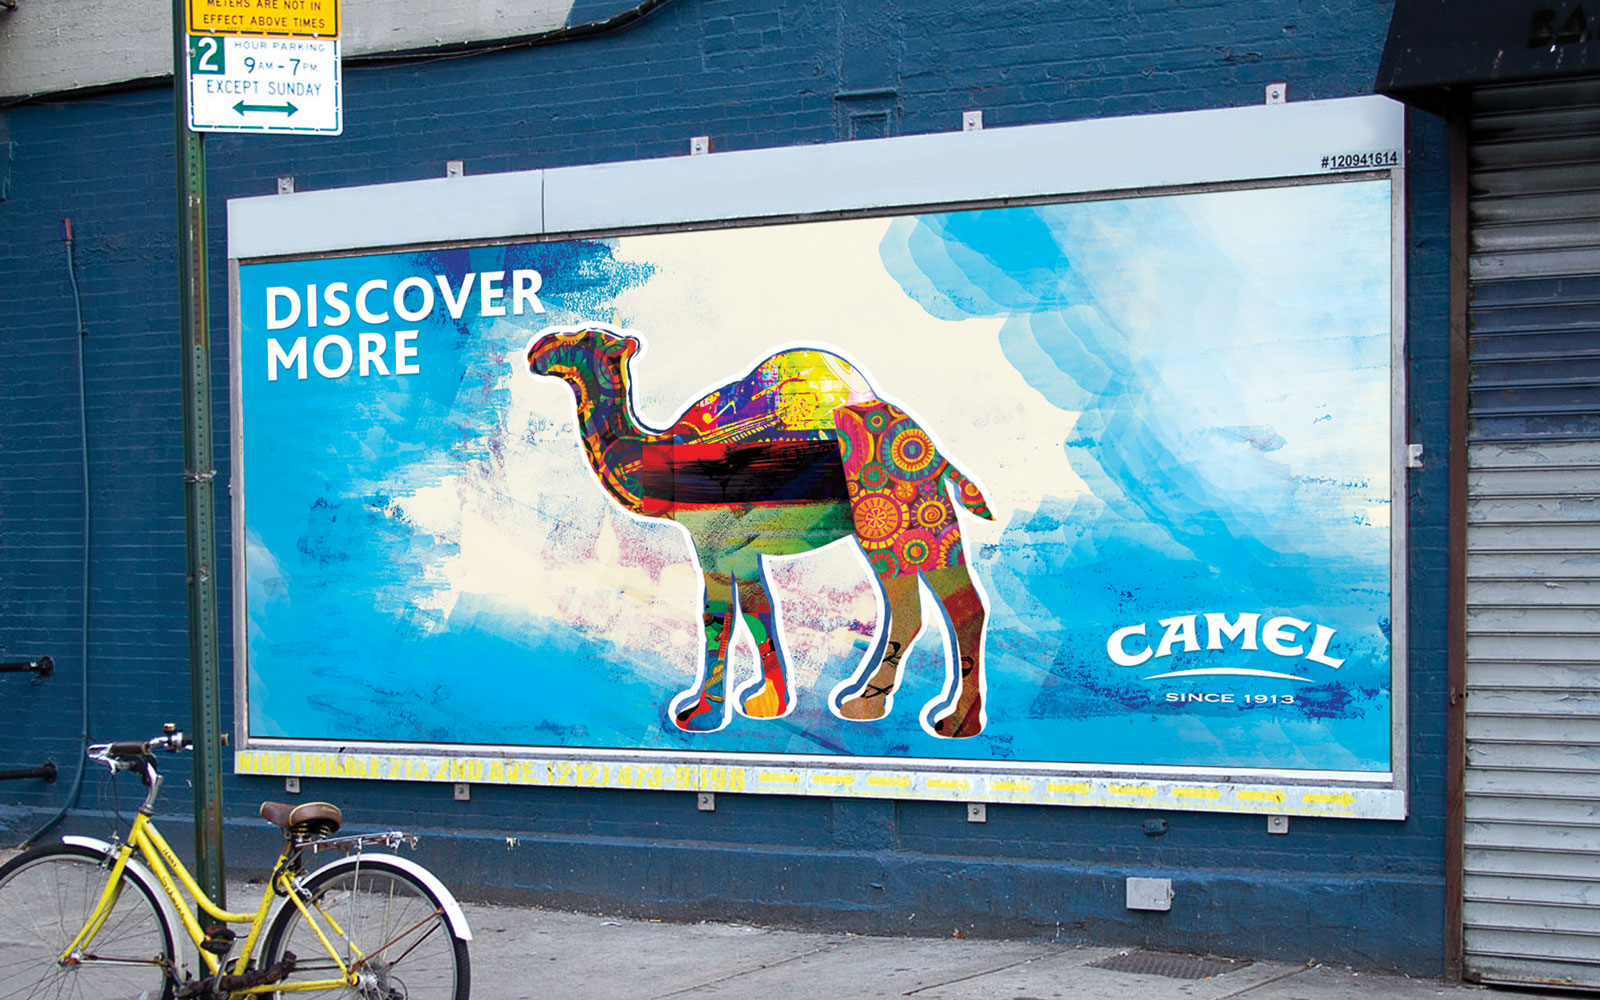 Camel promotional campaign